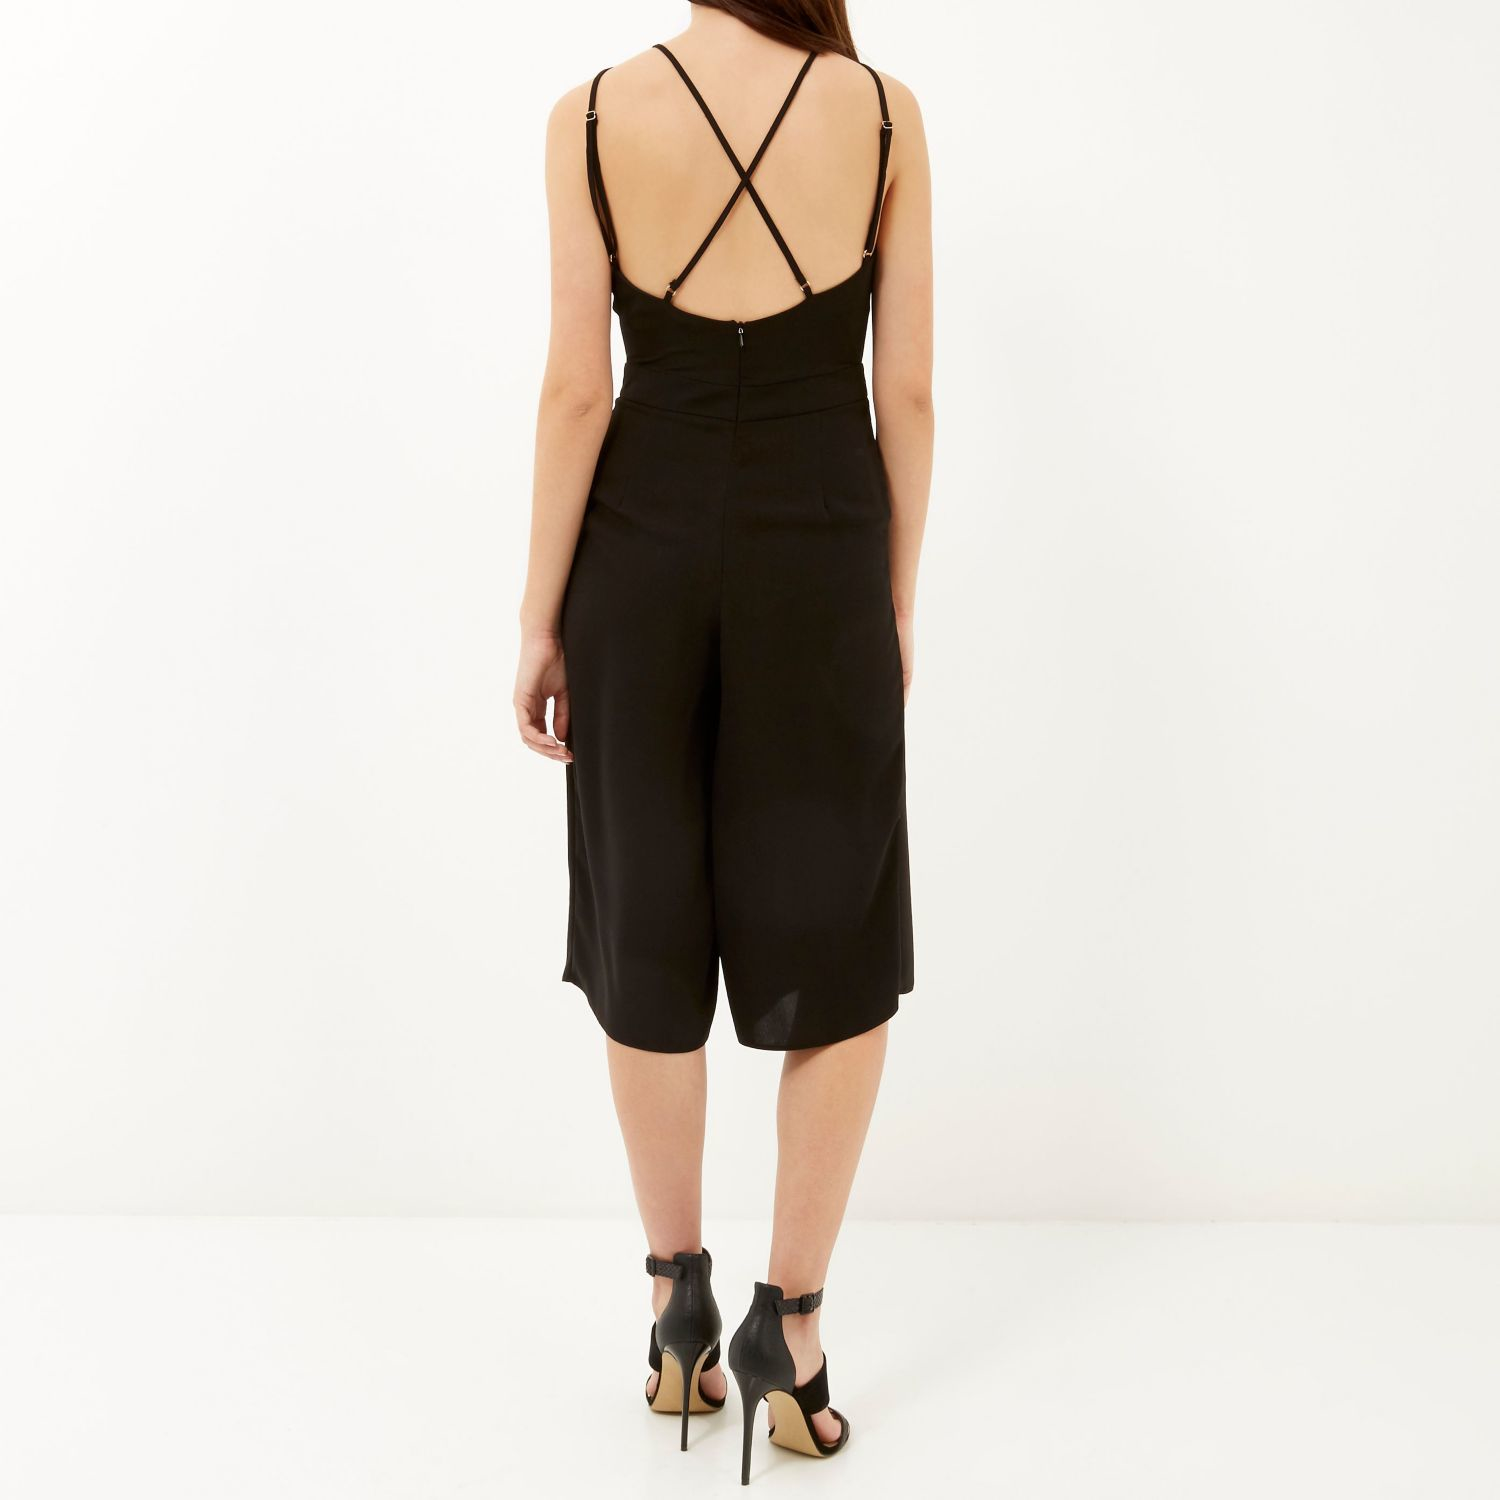 75c29187e58b River Island Black Strappy Cropped Jumpsuit in Black - Lyst